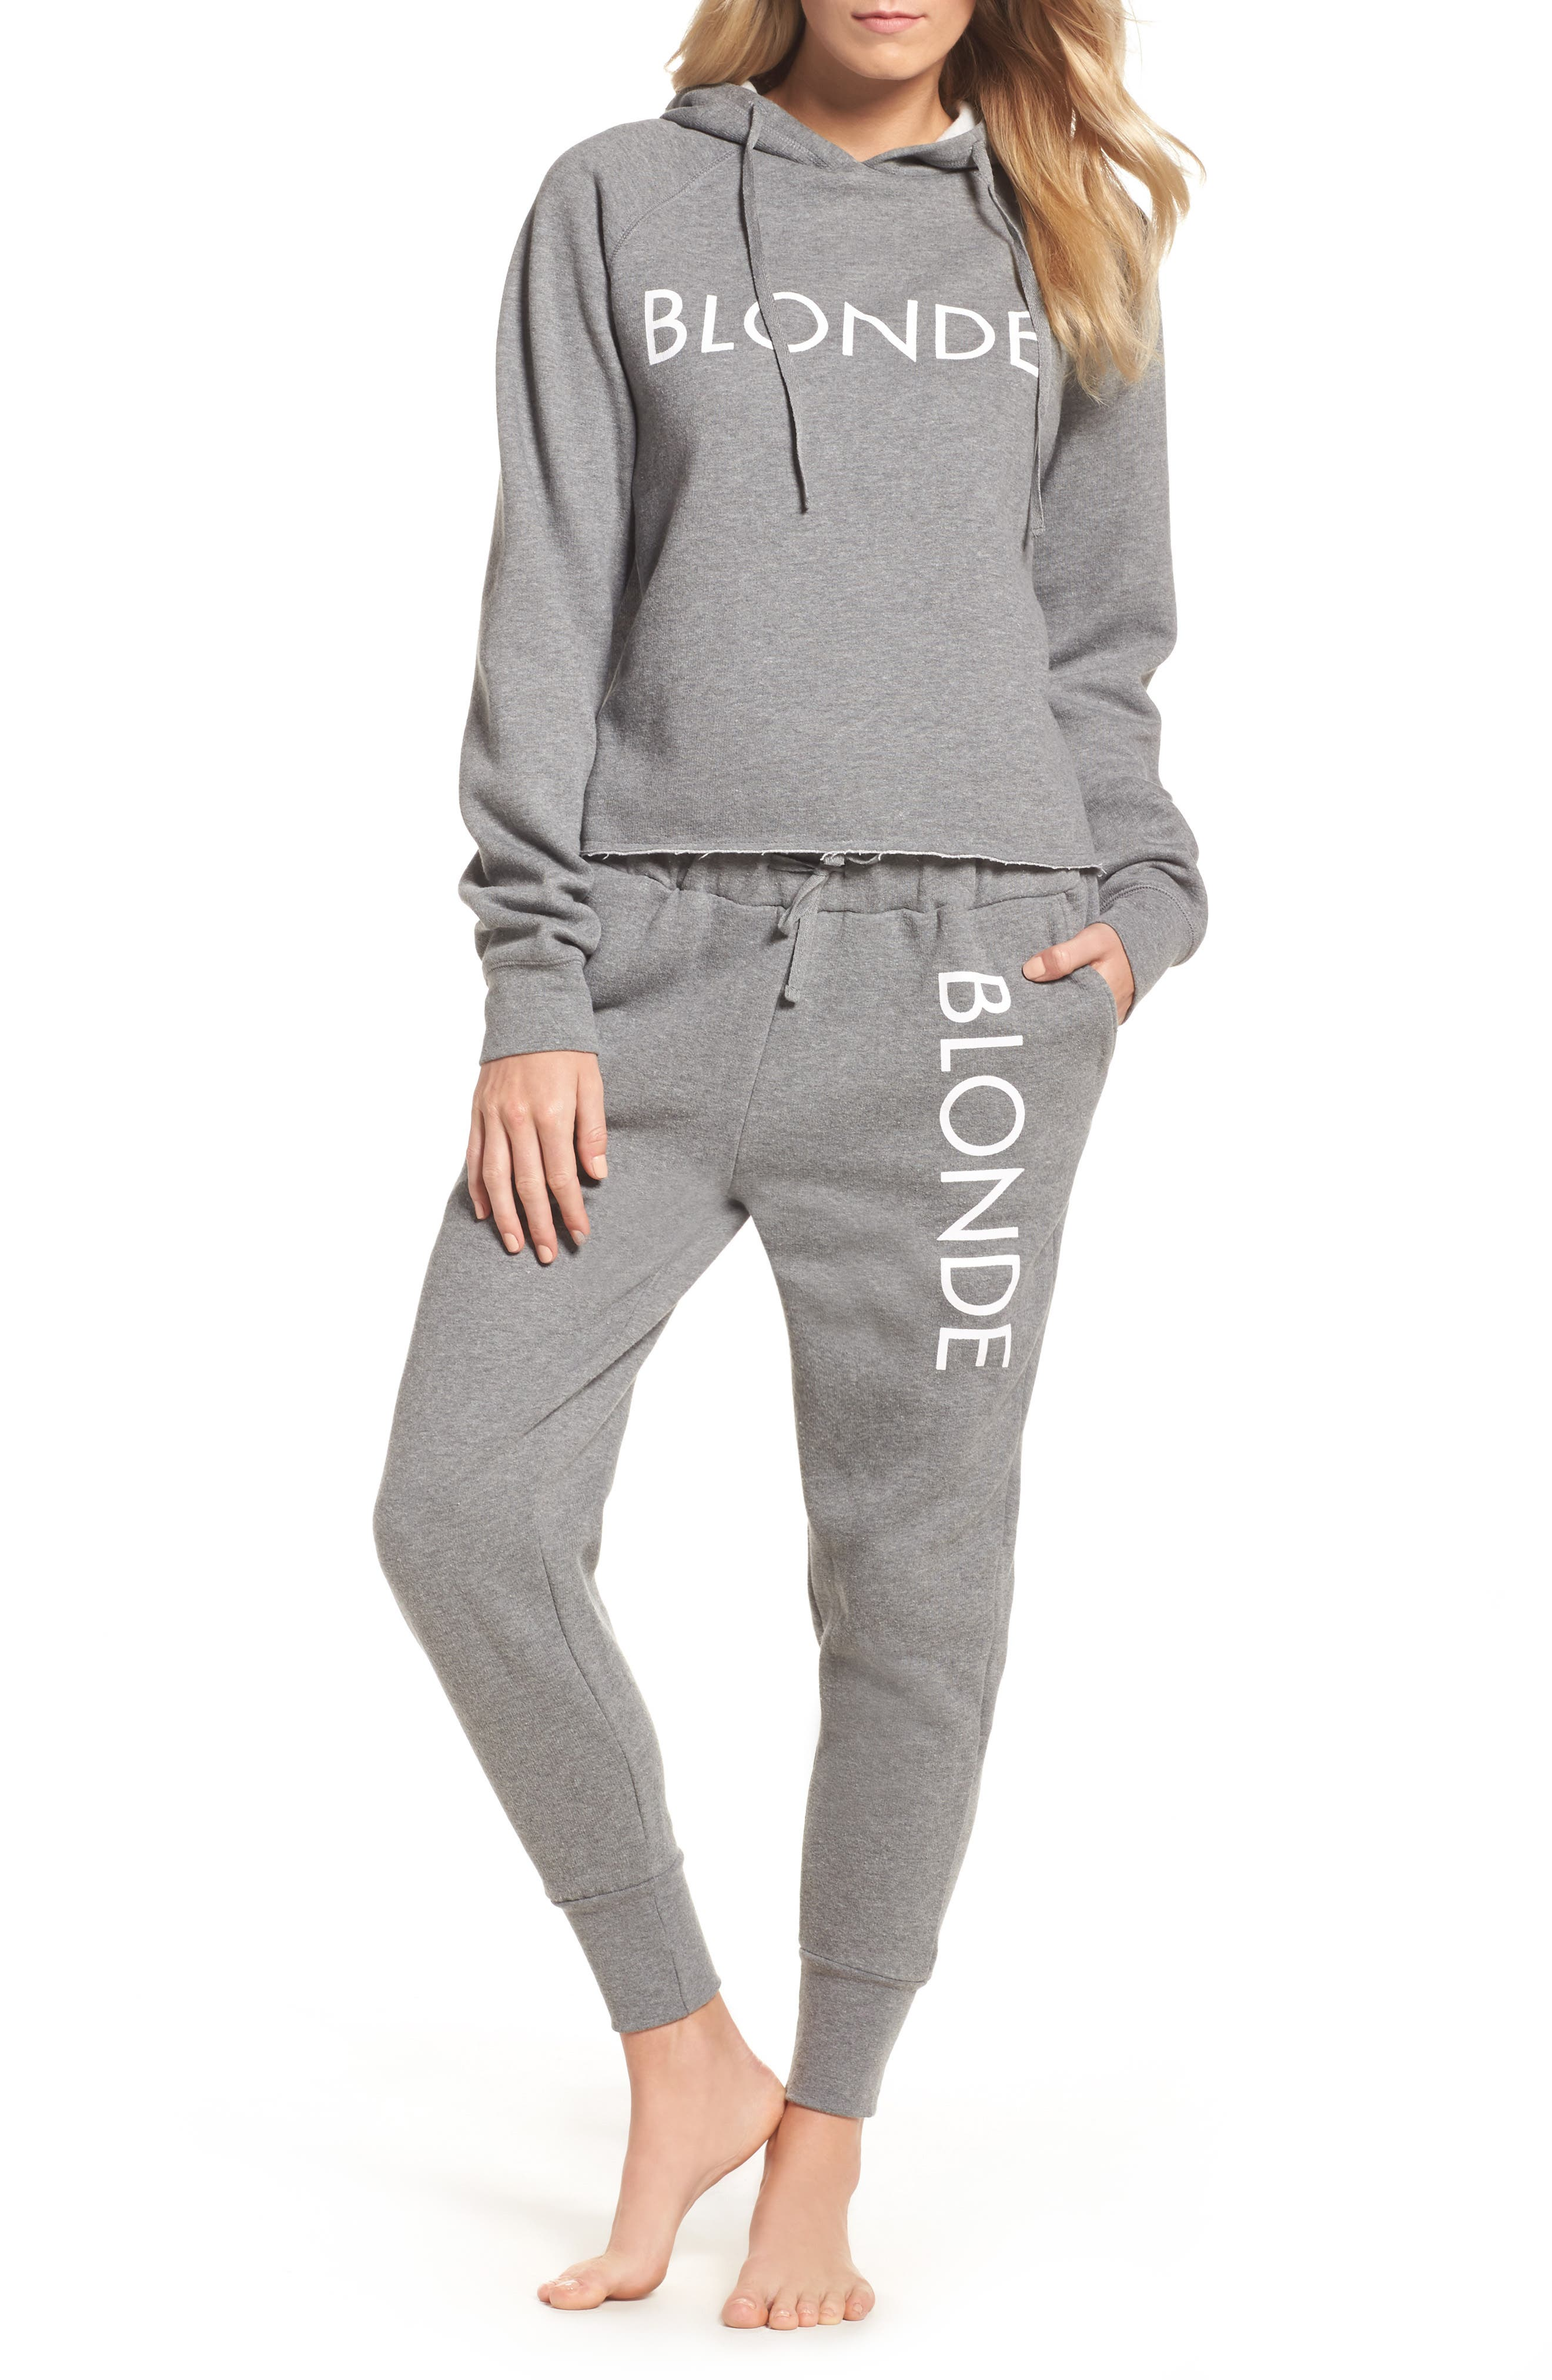 Blonde Raw Hem Hoodie,                             Alternate thumbnail 7, color,                             HEATHER GREY WHITE